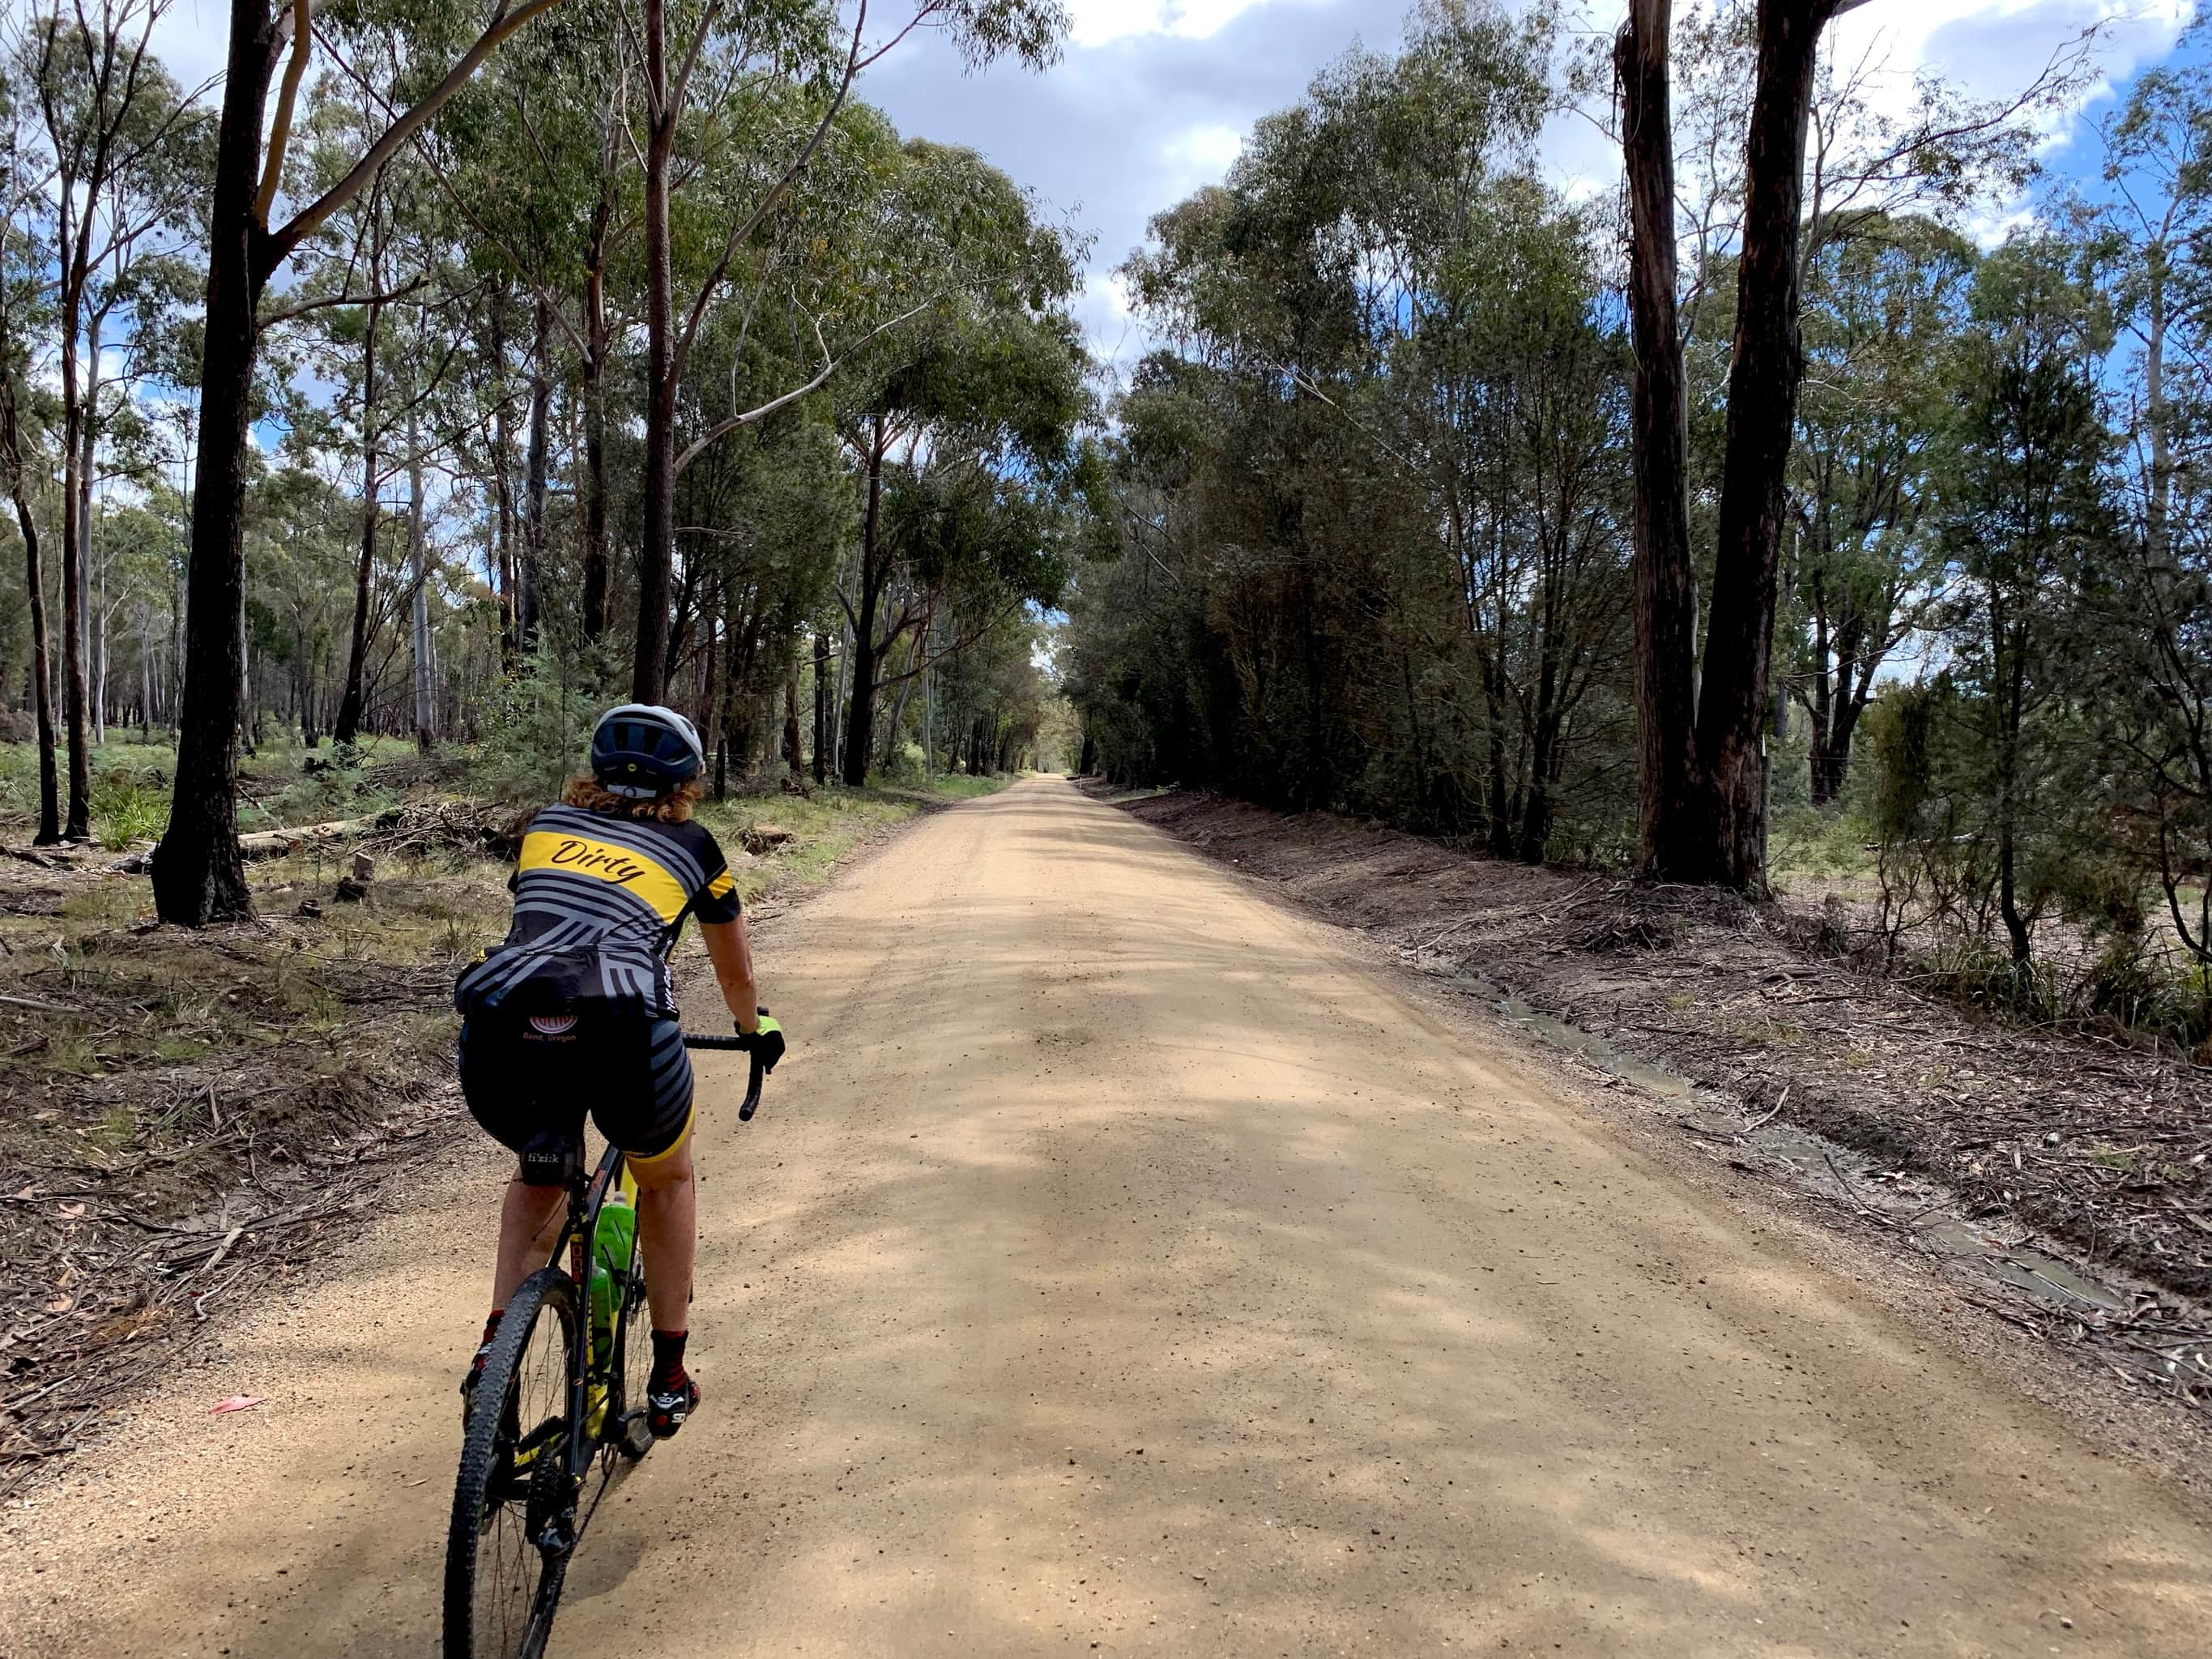 Bike rider on gravel road with tall trees to both sides of road.